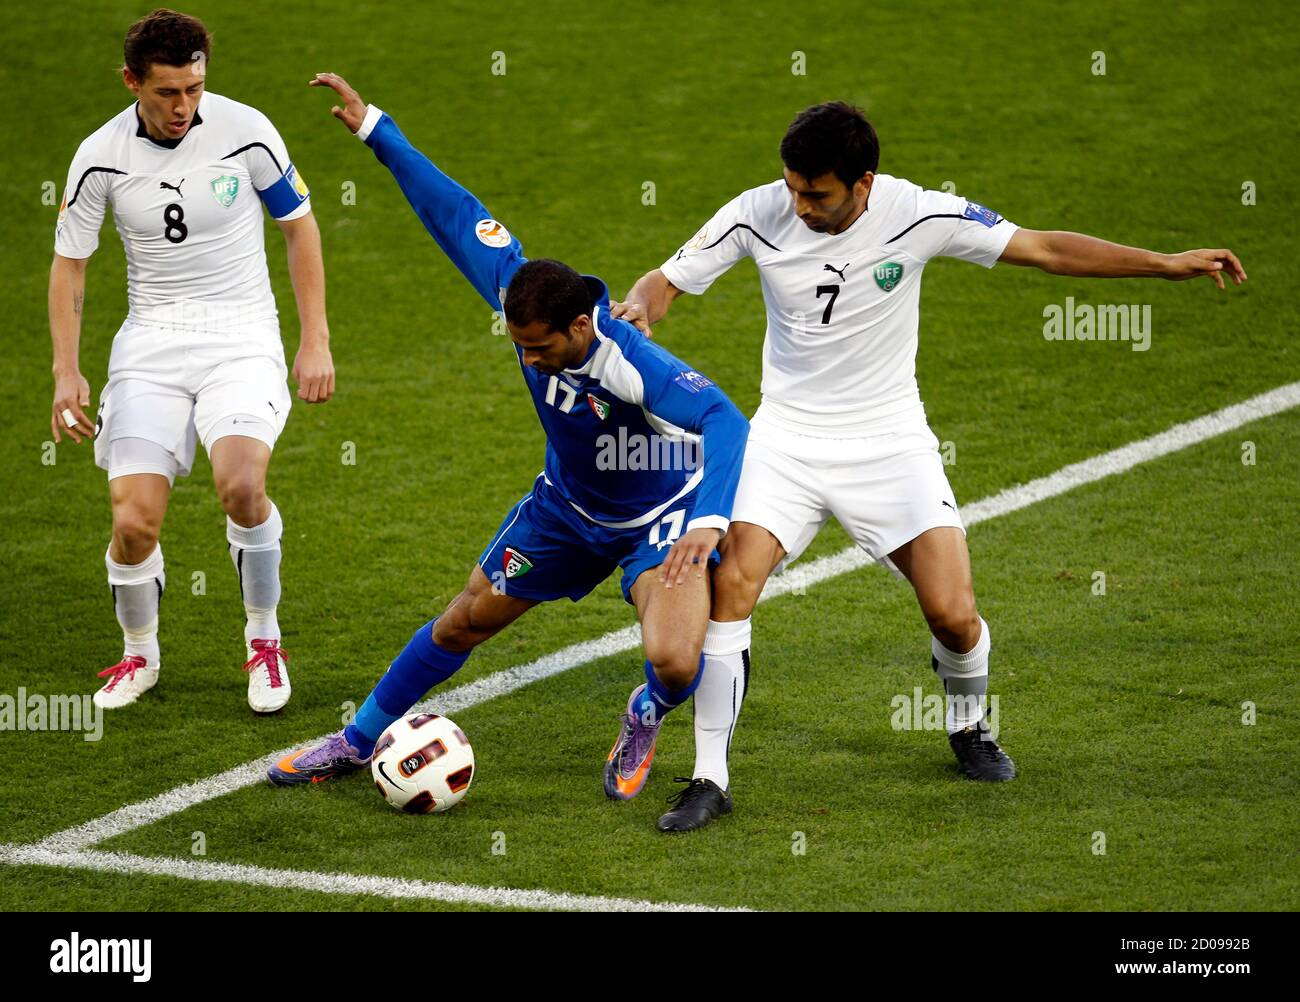 Uzbekistan's Azizbek Haydarov (R) challenges Kuwait's Bader Al Mutwa (C) while teammate Server Djeparov looks on during their 2011 Asian Cup Group A soccer match at Al Gharafa stadium in Doha January 12, 2011. REUTERS/Oleg Popov (QATAR  - Tags: SPORT SOCCER) Stock Photo